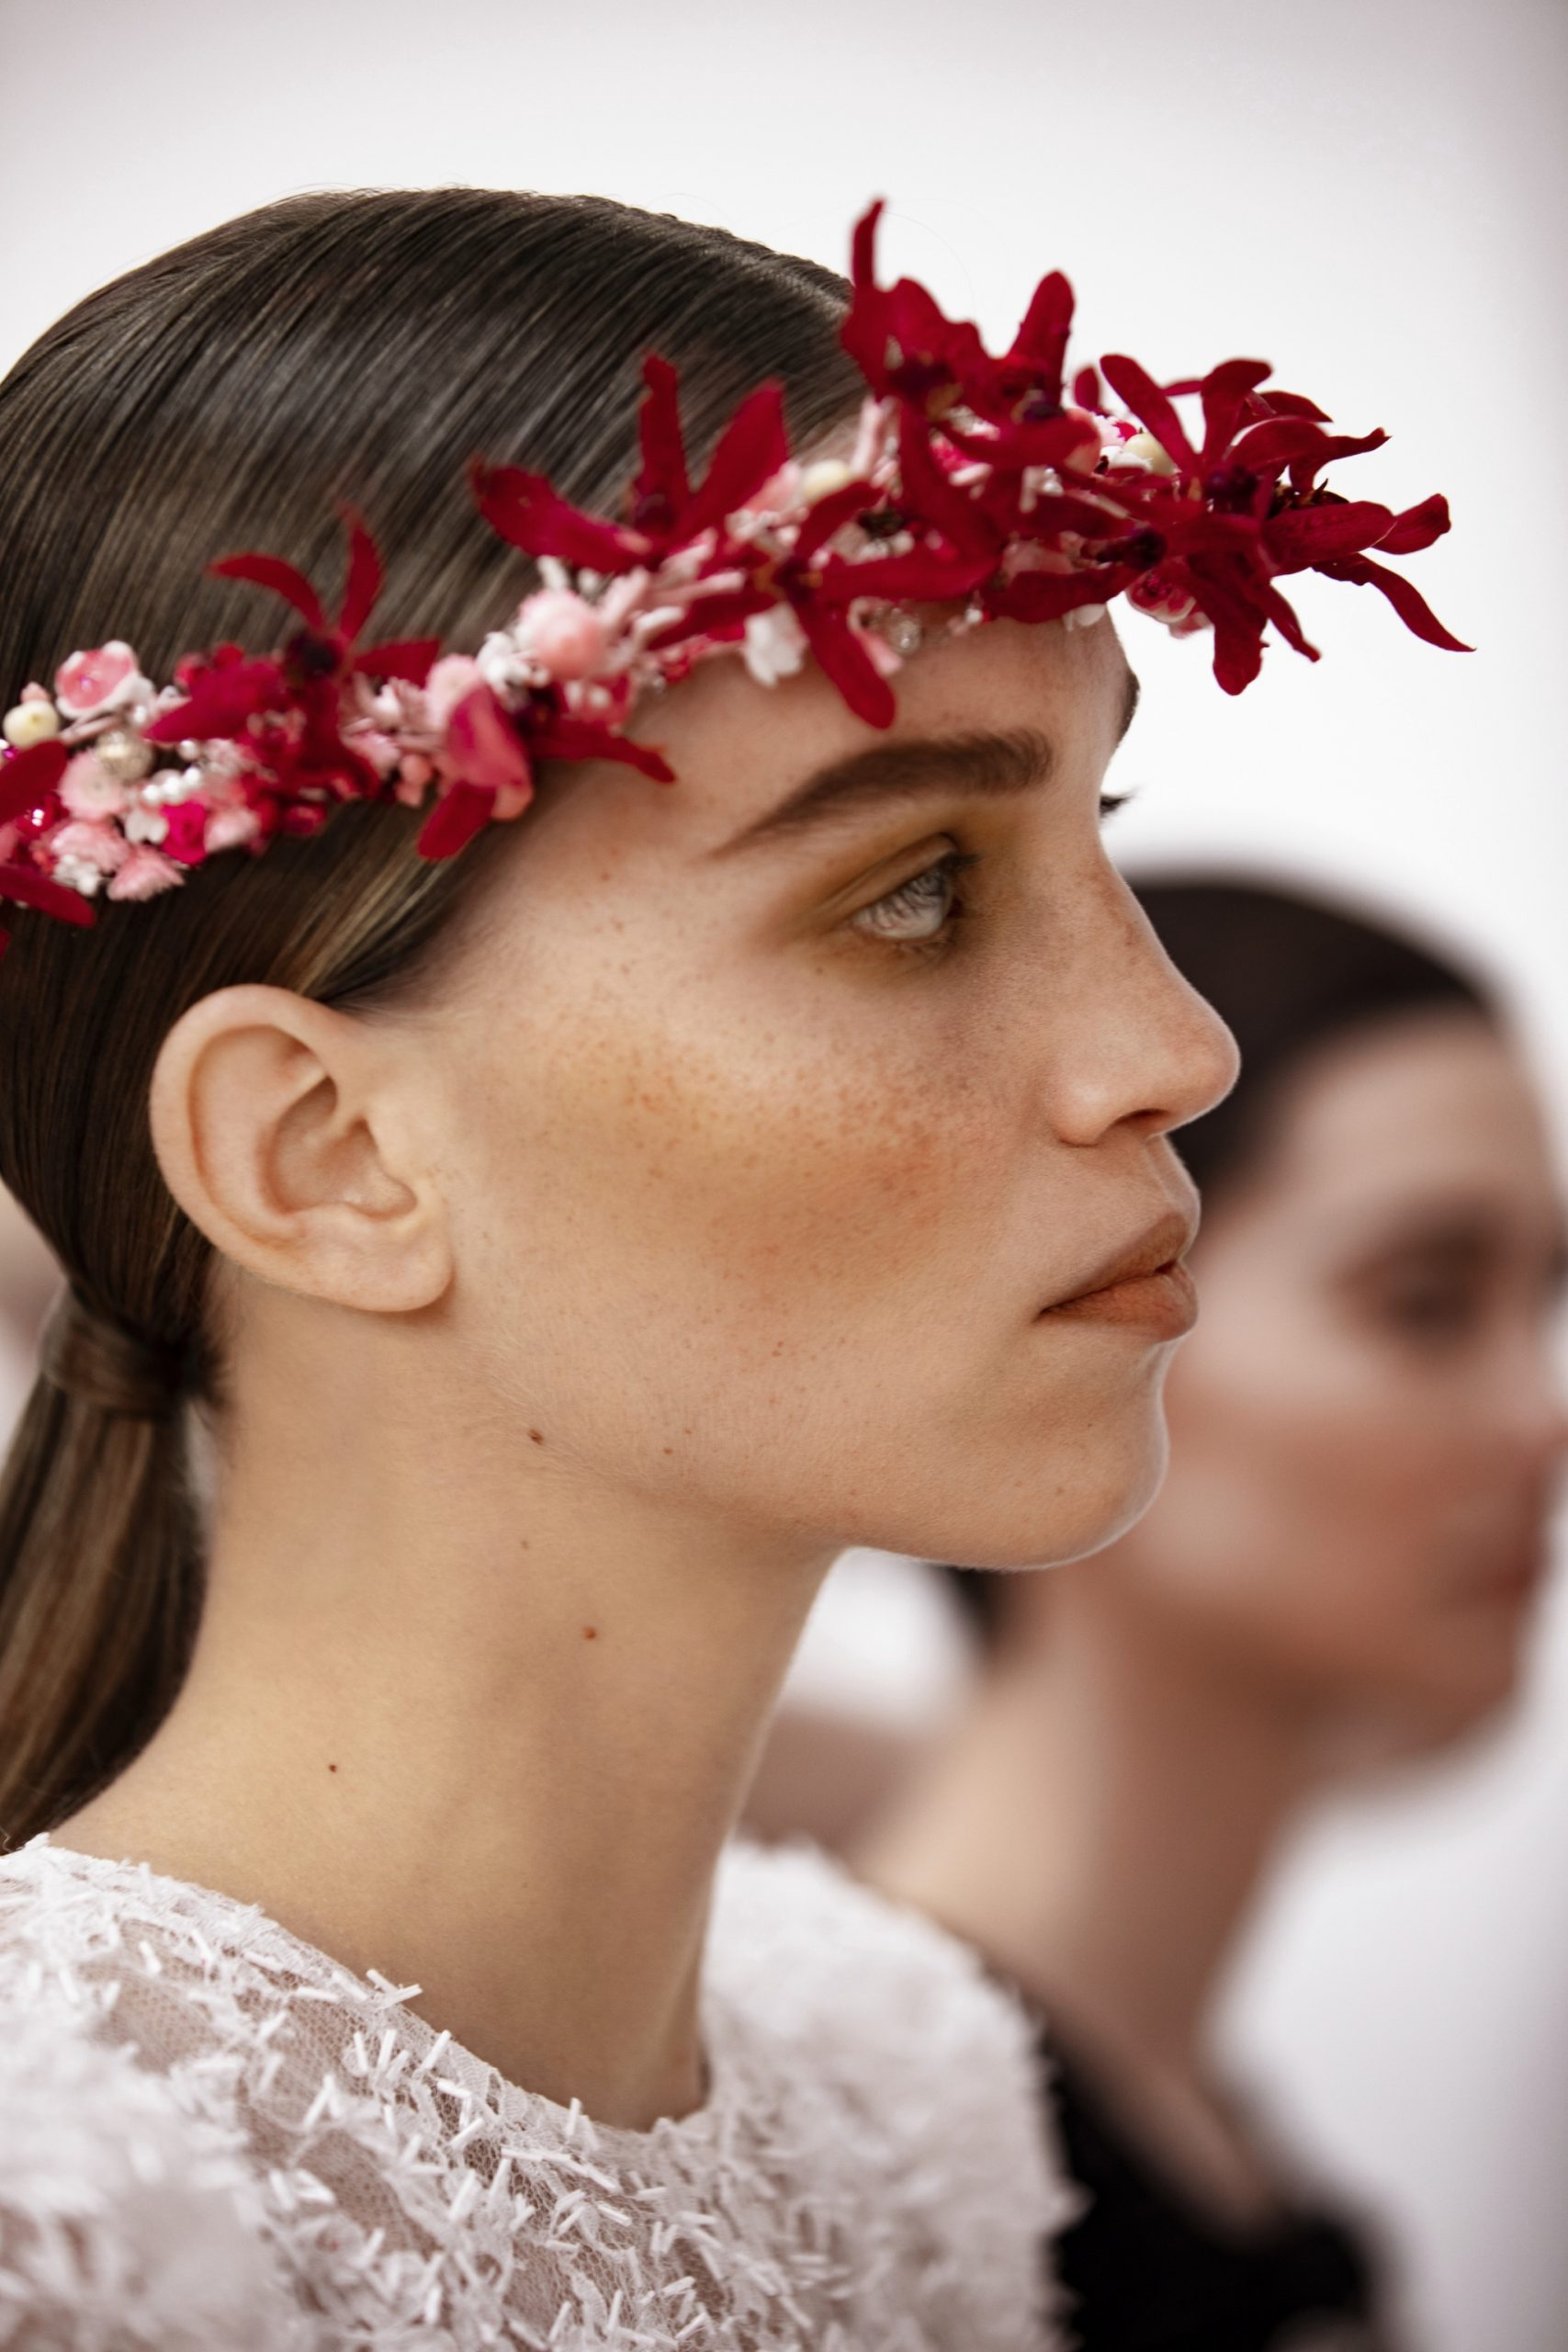 Chanel Haute Couture Spring Summer 2021 beauty